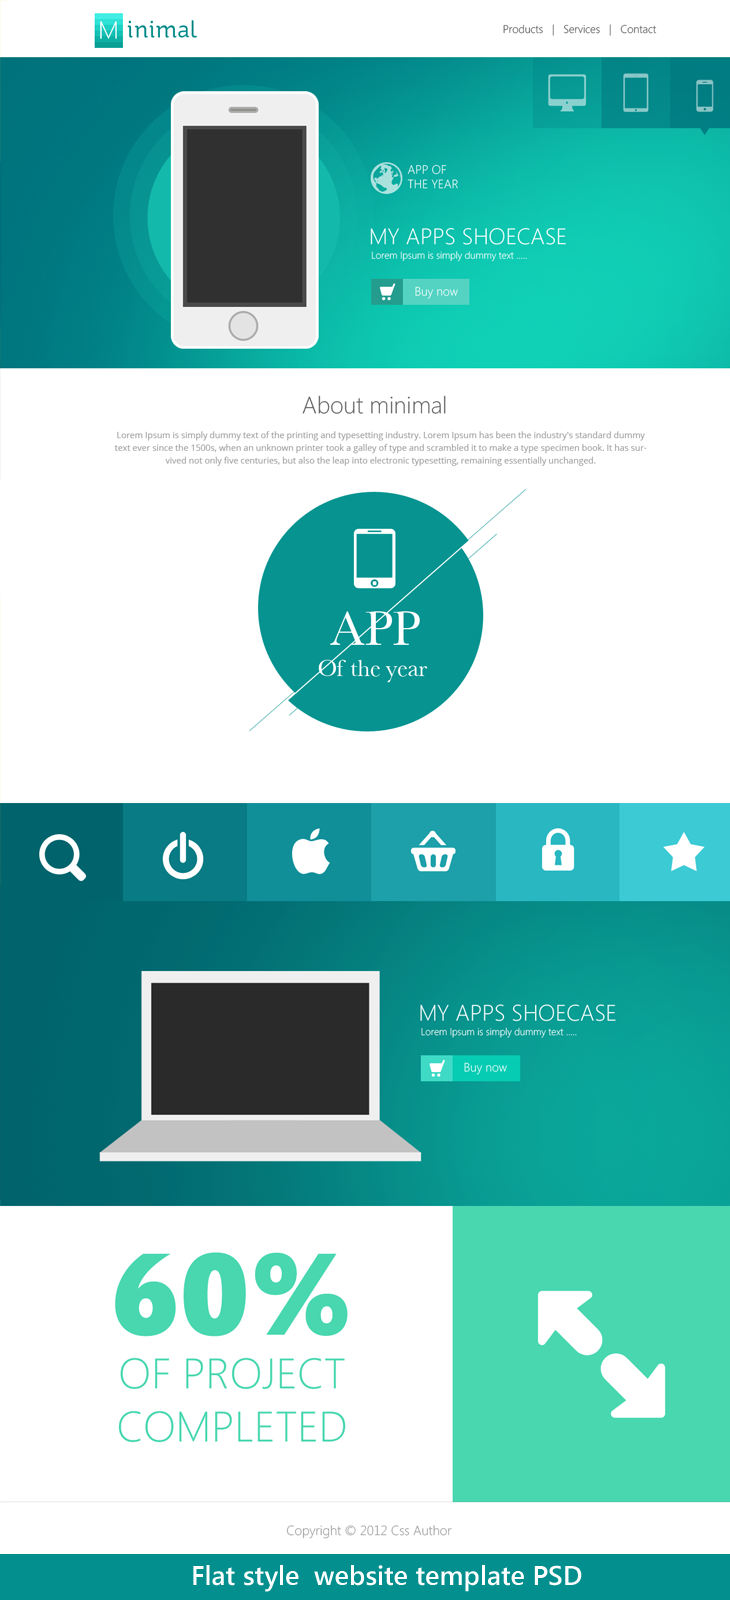 16 Premium and Free PSD Website Templates | web design | Pinterest ...